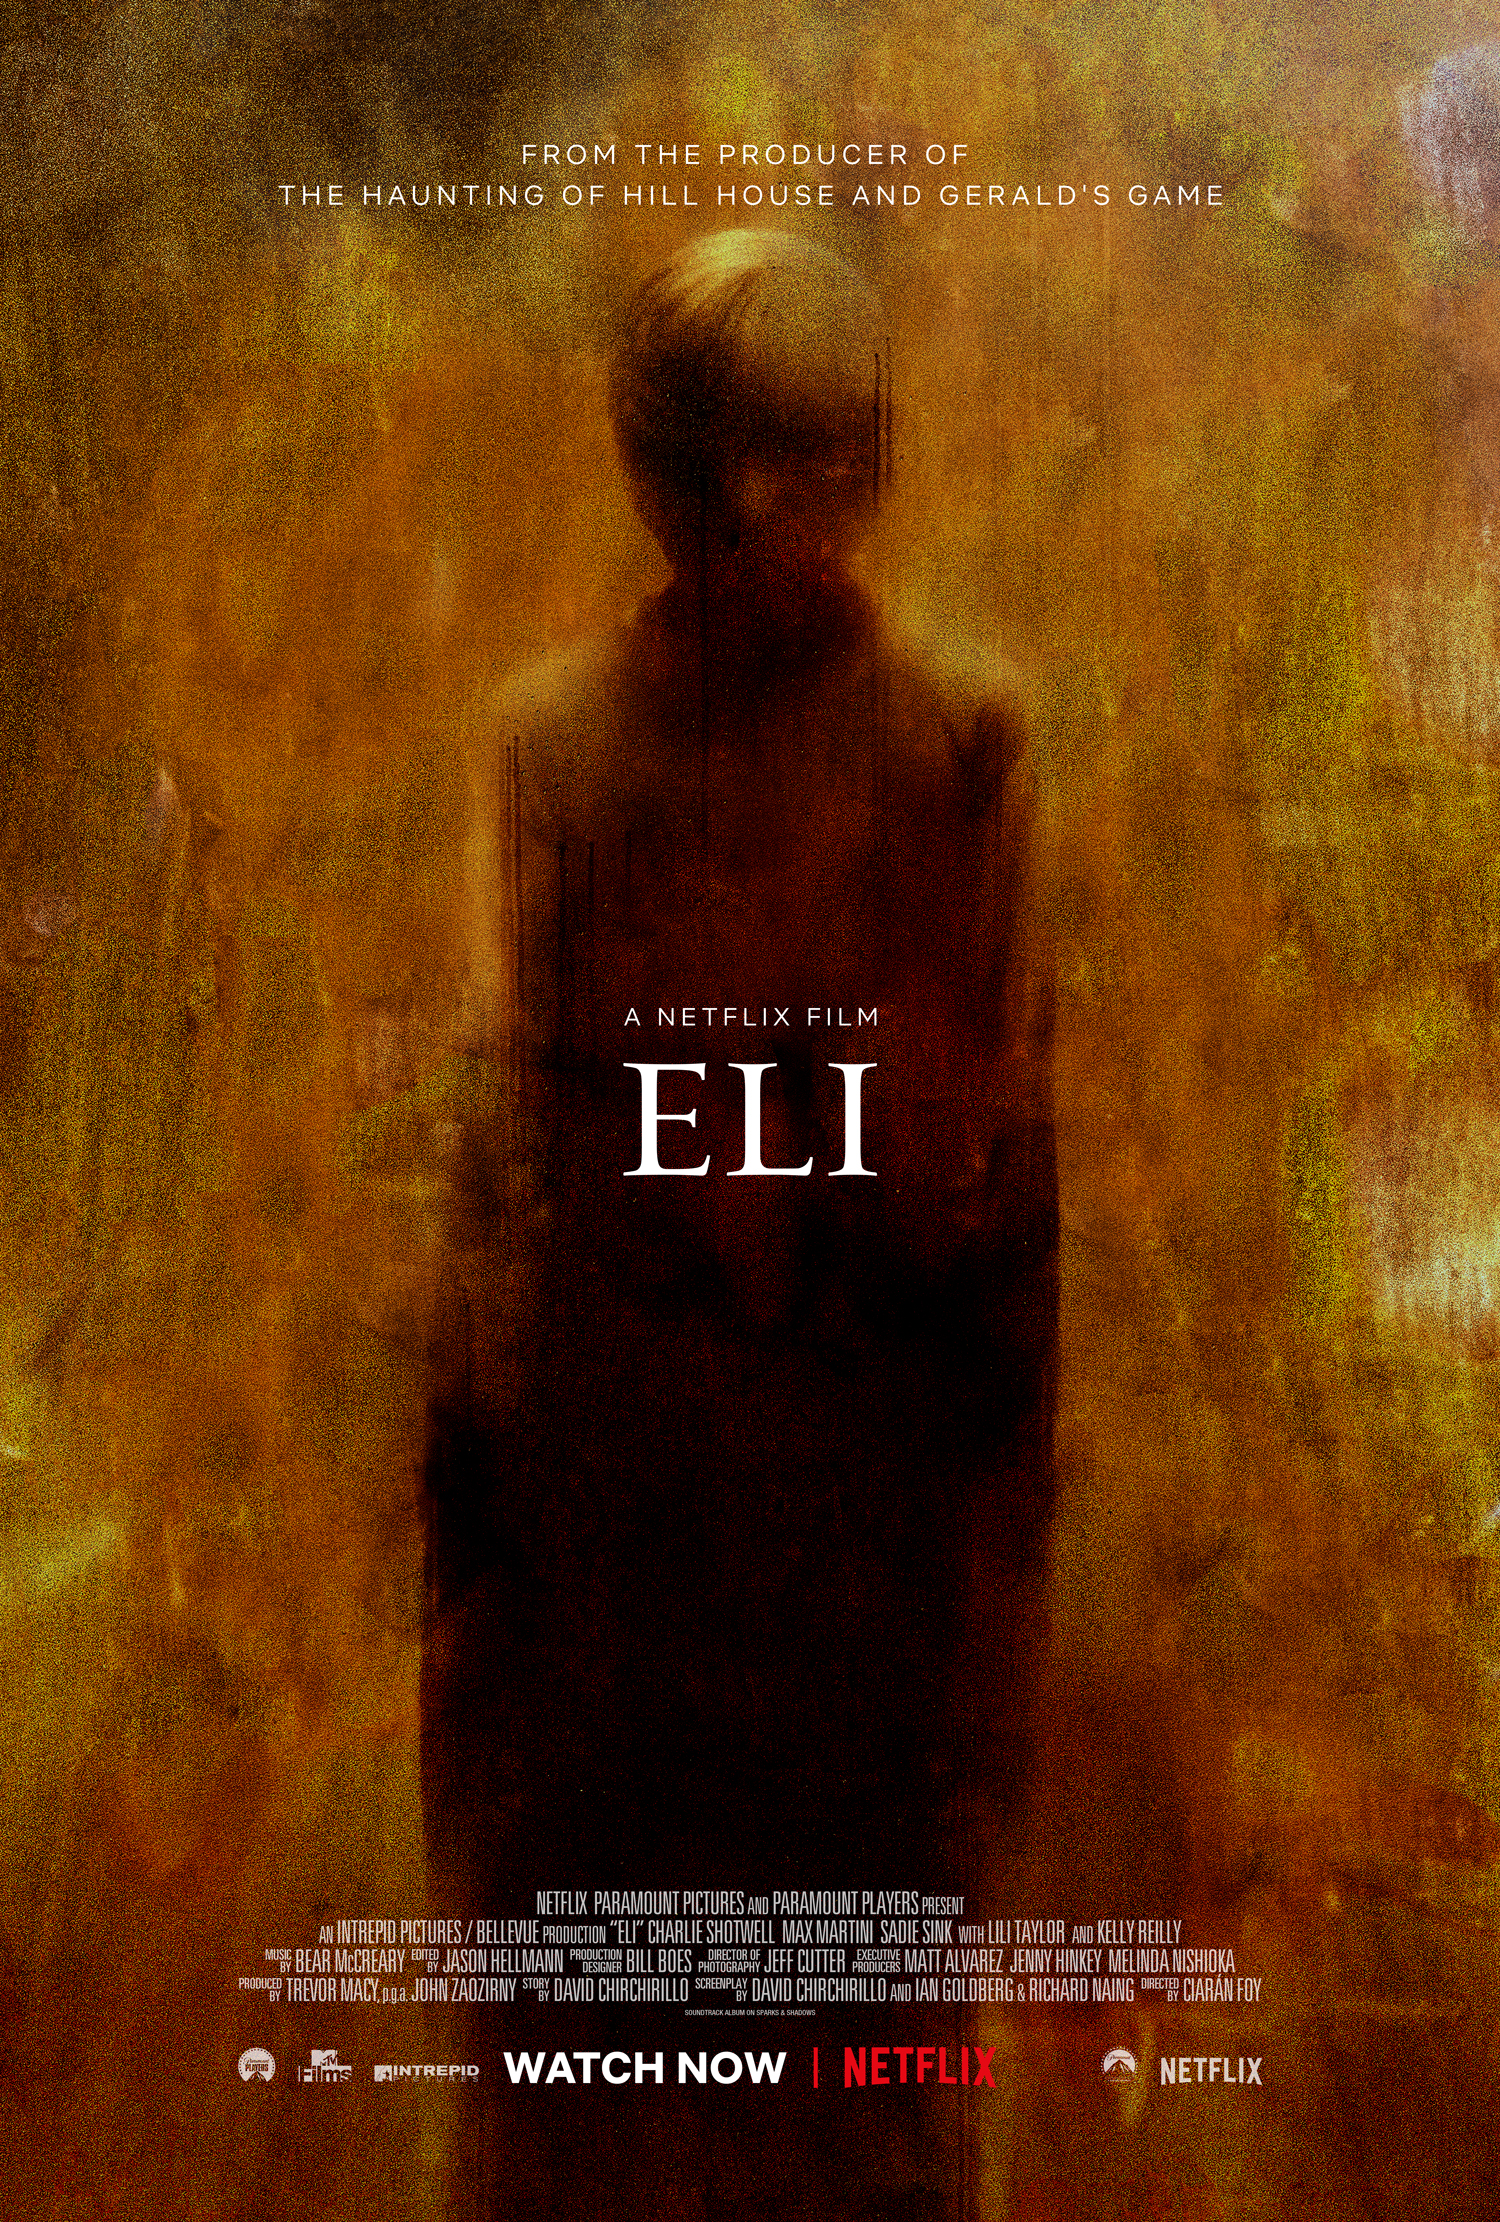 Eli 2019 Netflix movie poster